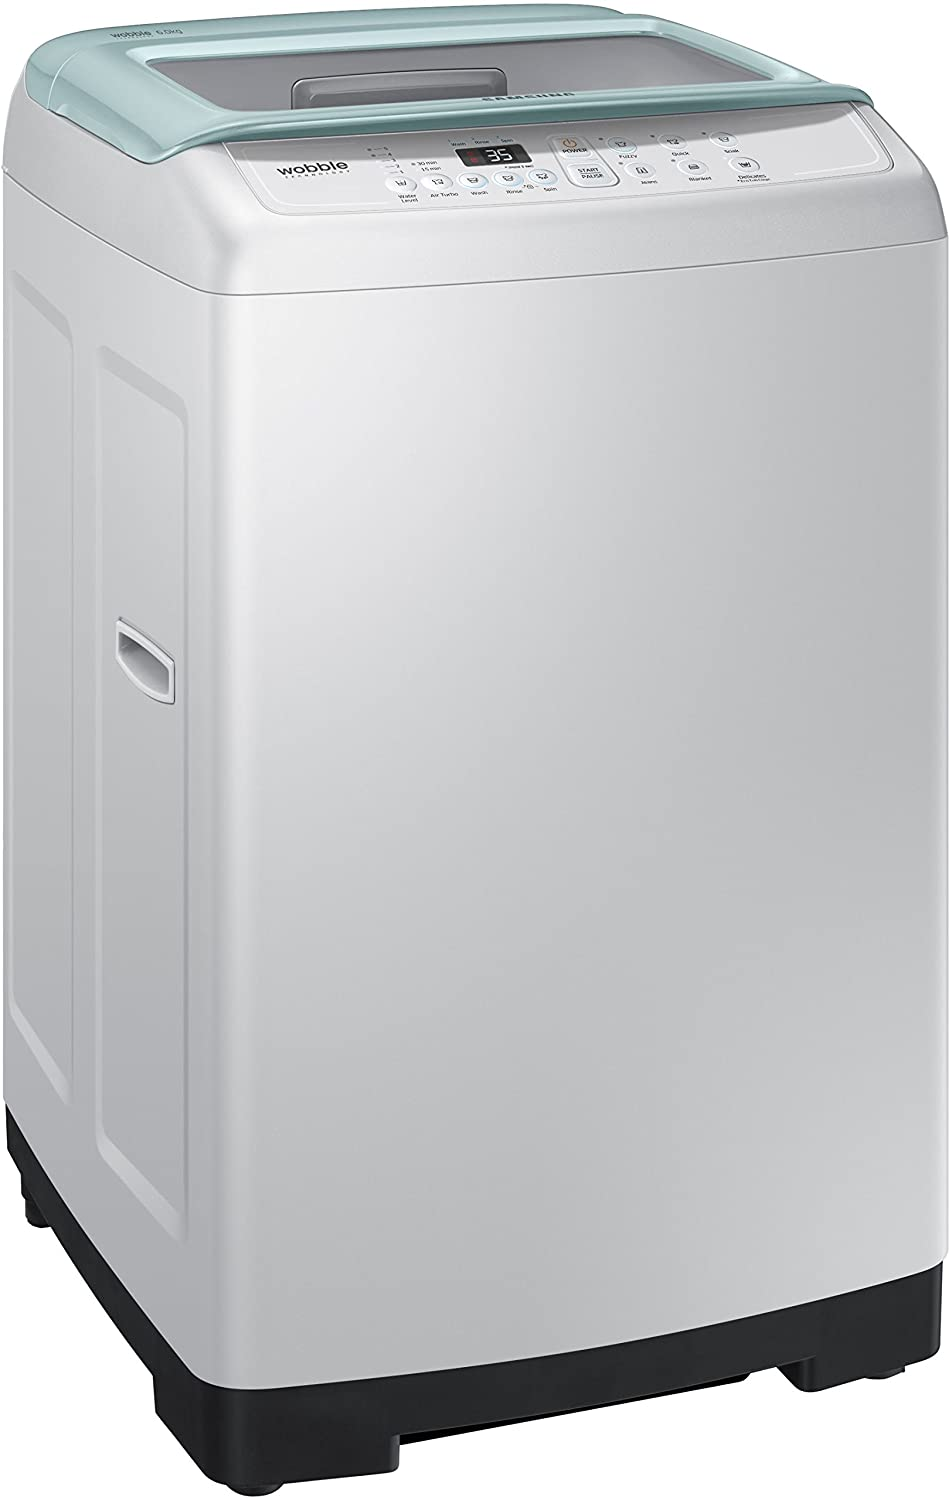 Samsung 6 kg Fully-Automatic Top Loading Washing Machine (WA60H4300HB,  Light Grey and Savoy Blue): Amazon.in: Home & Kitchen